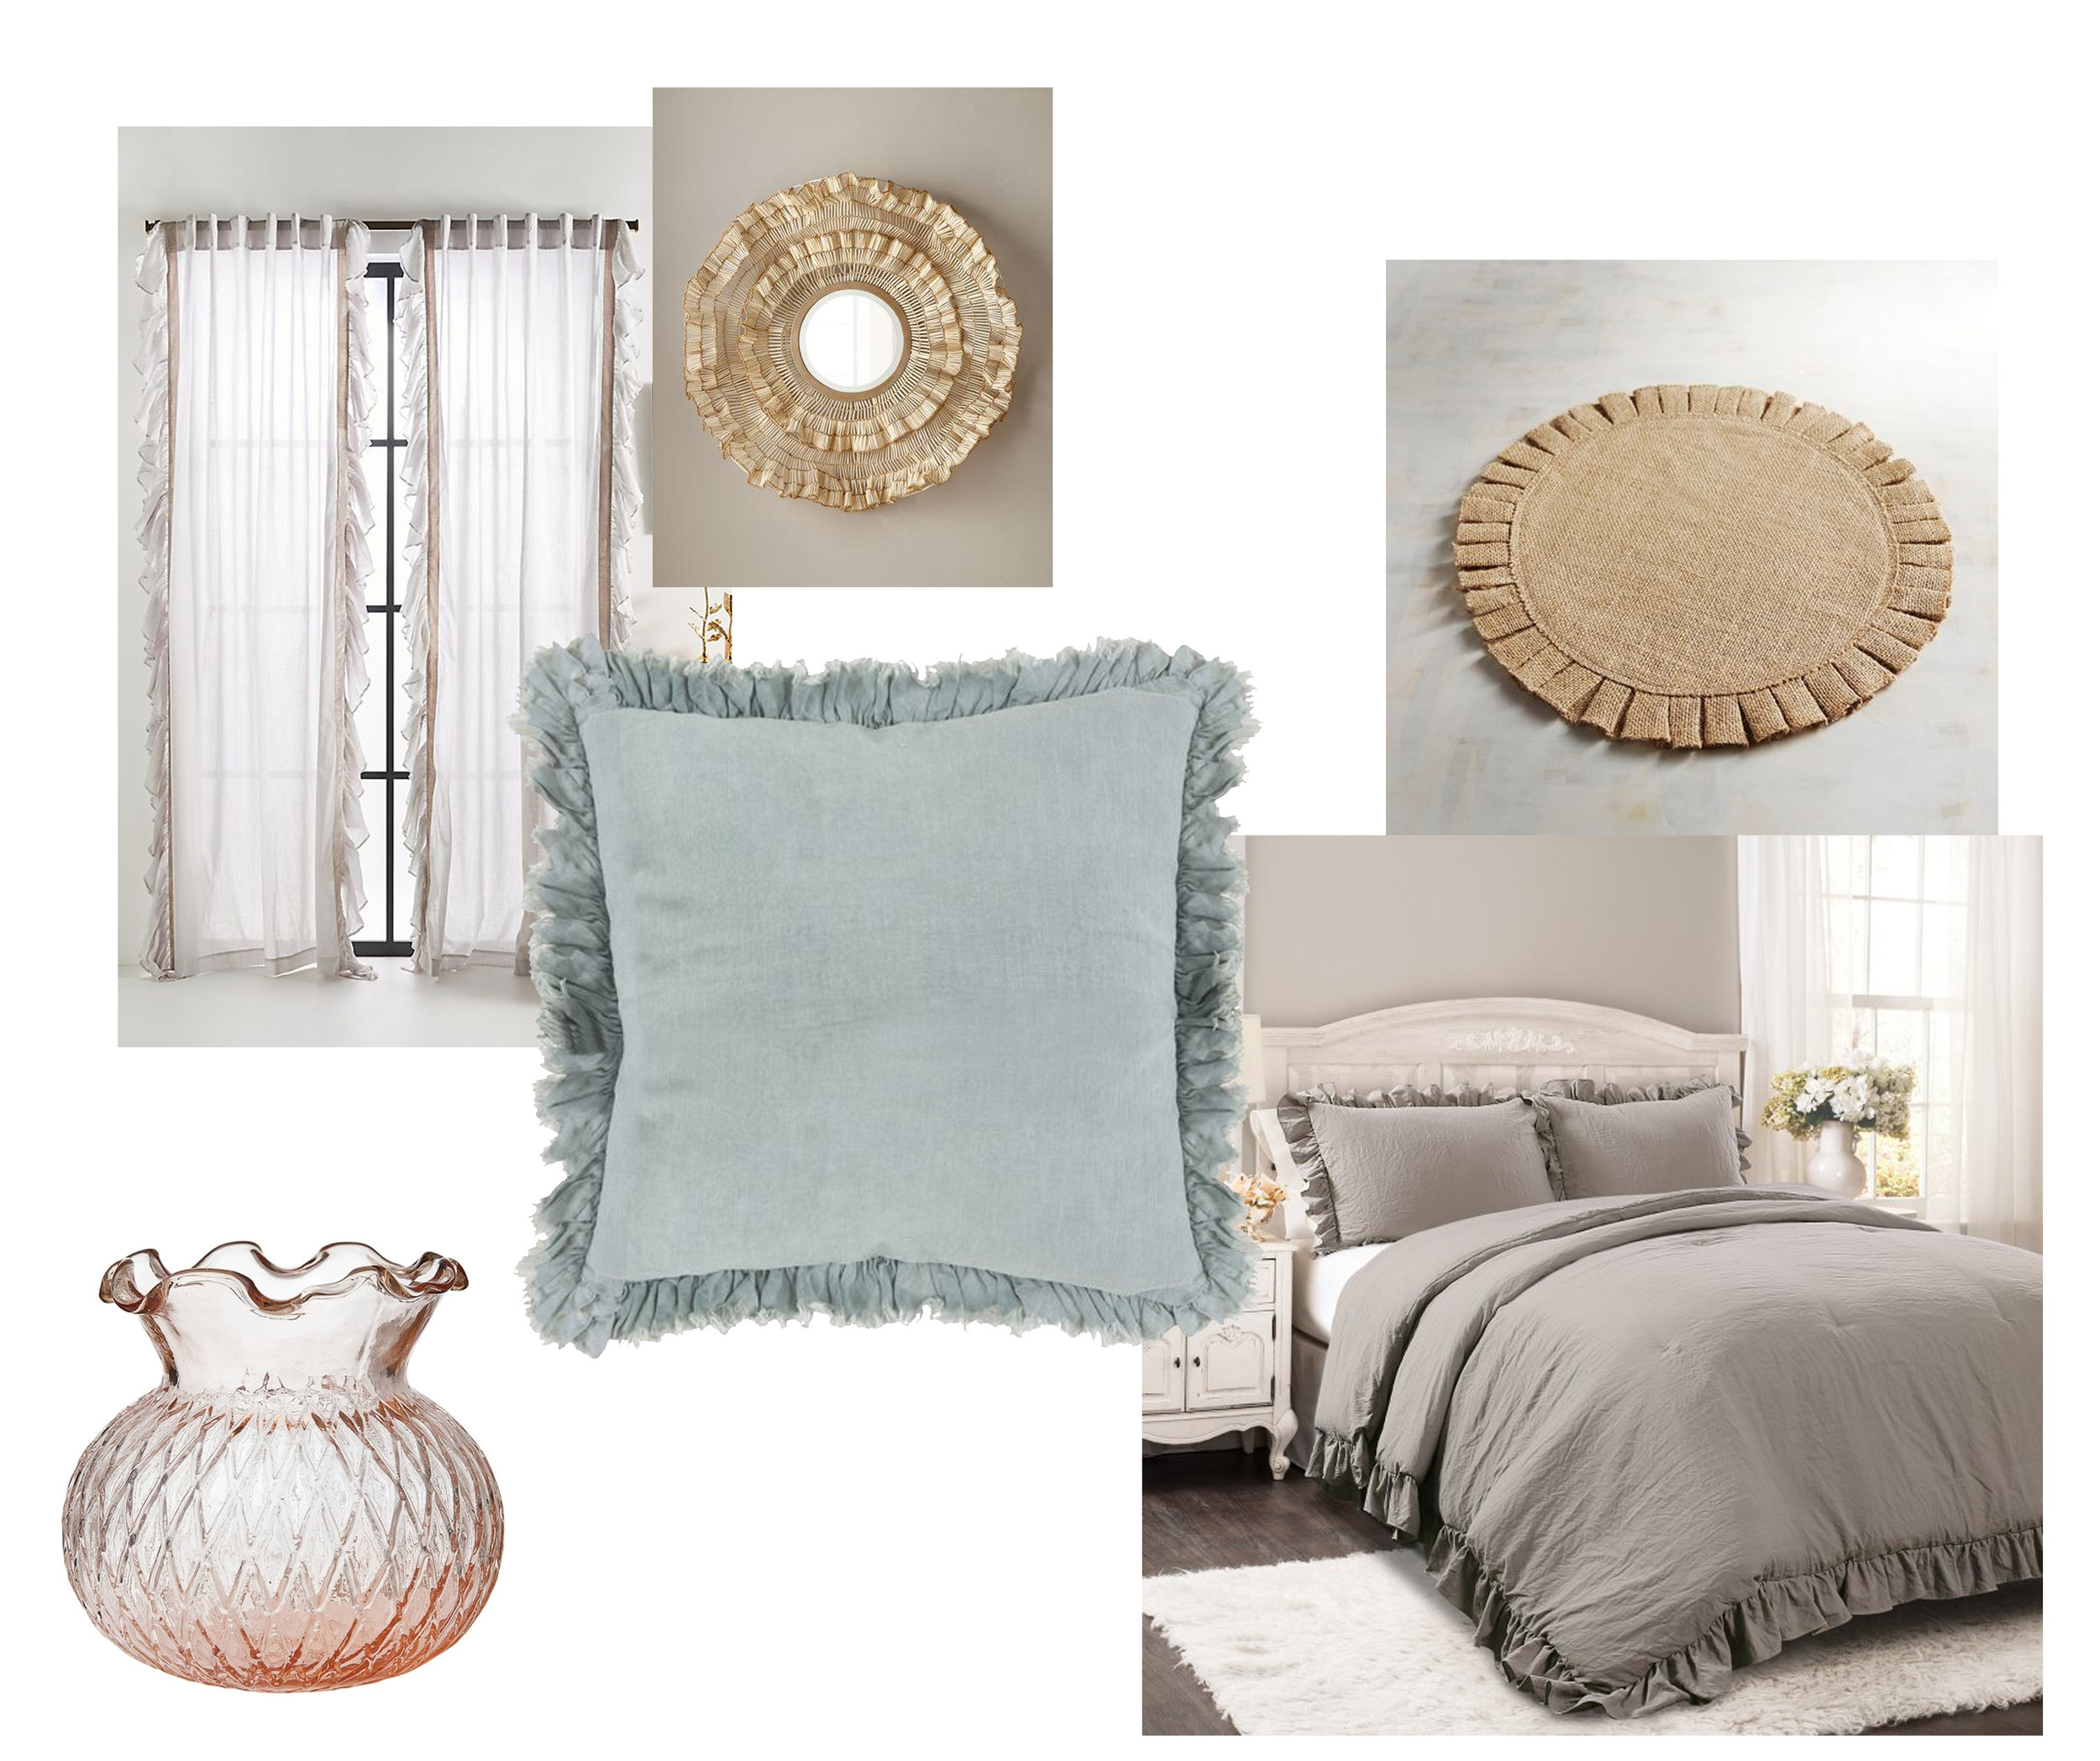 COMFORTER  |  CURTAIN  |  THROW PILLOW  |  PLACEMAT  |  VASE  |  MIRROR